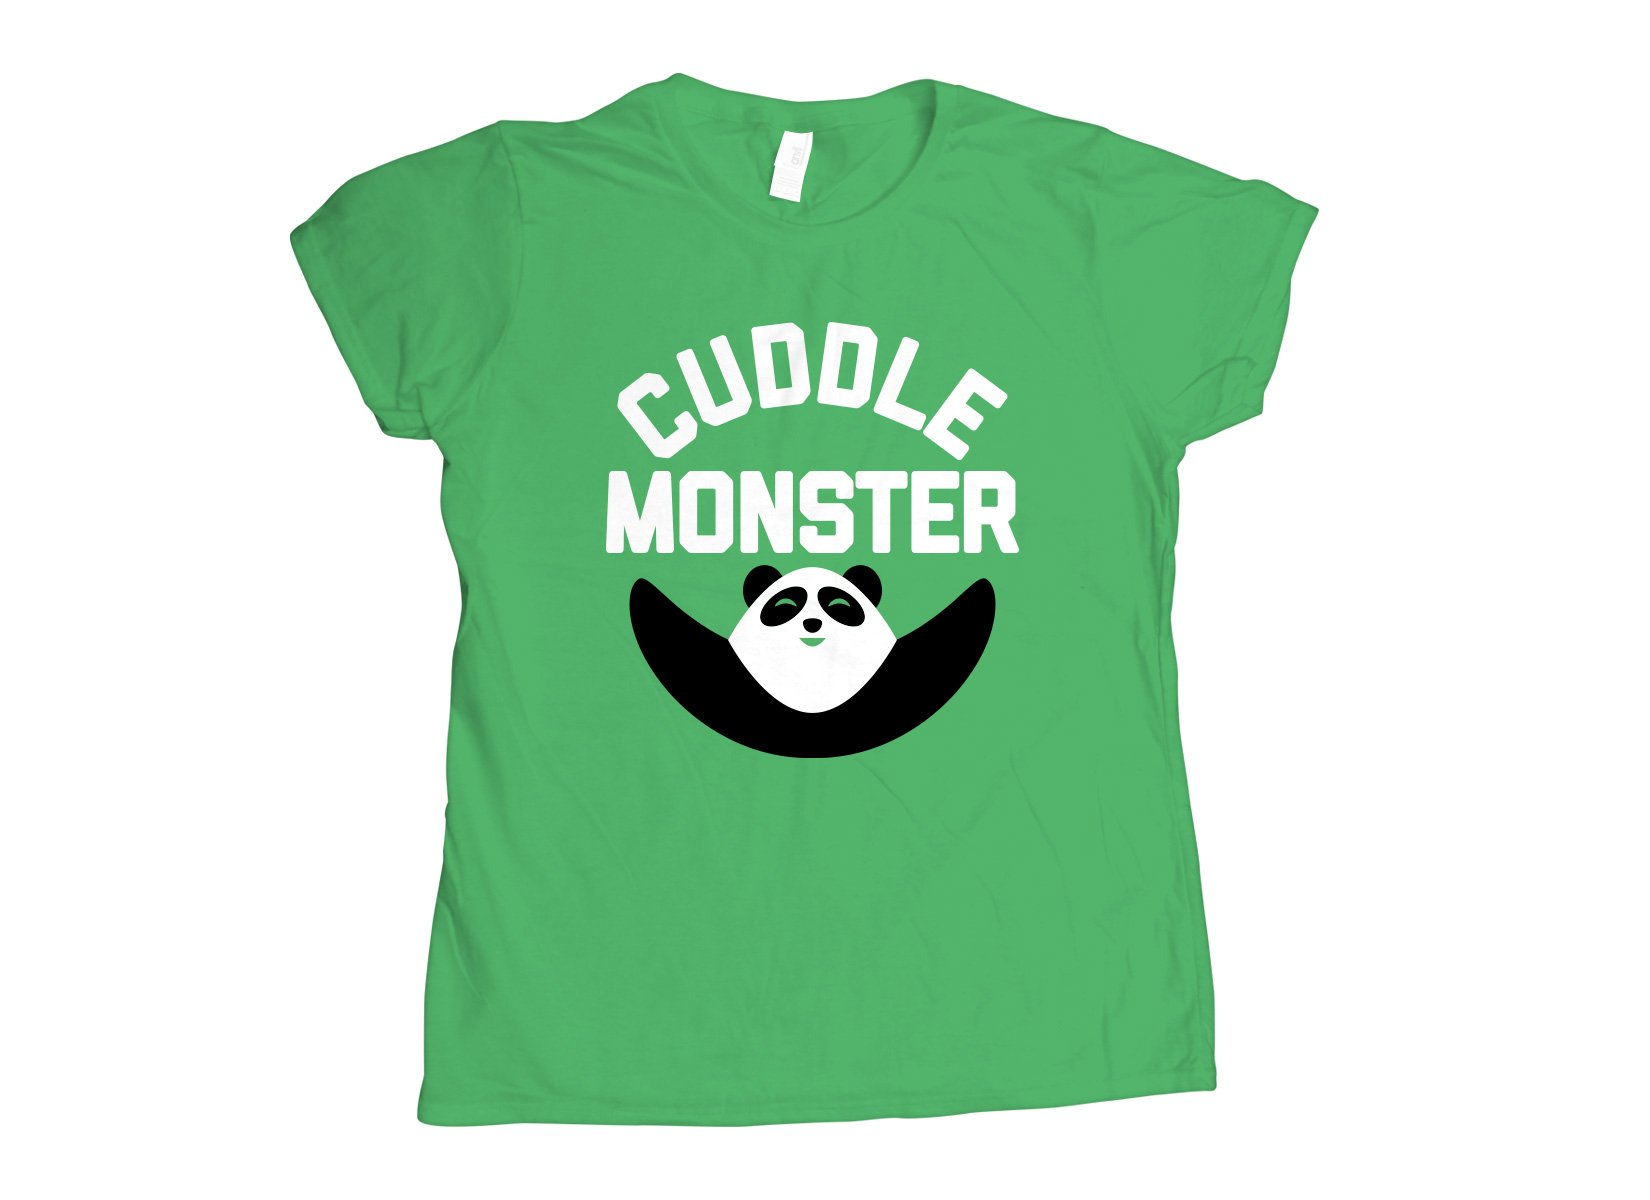 Cuddle Monster on Womens T-Shirt